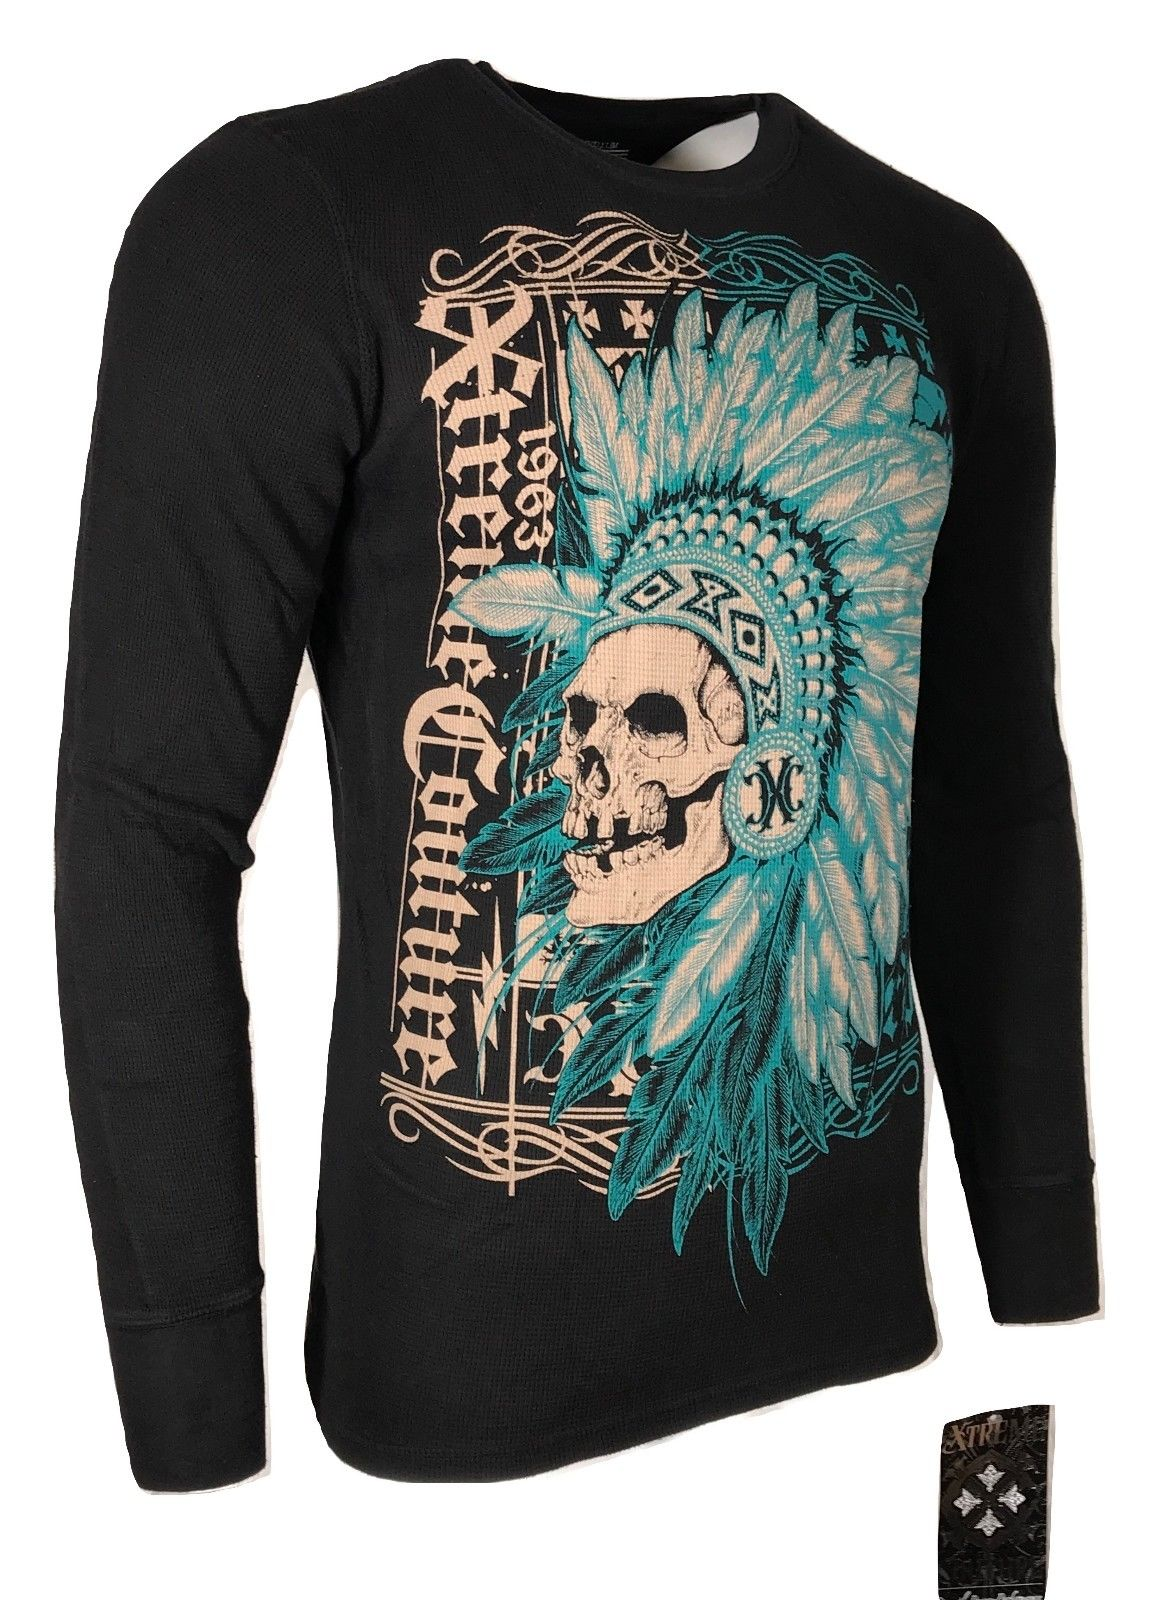 Xtreme Couture by AFFLICTION Men THERMAL T-Shirt ACCUSER Skull Biker MMA UFC $58